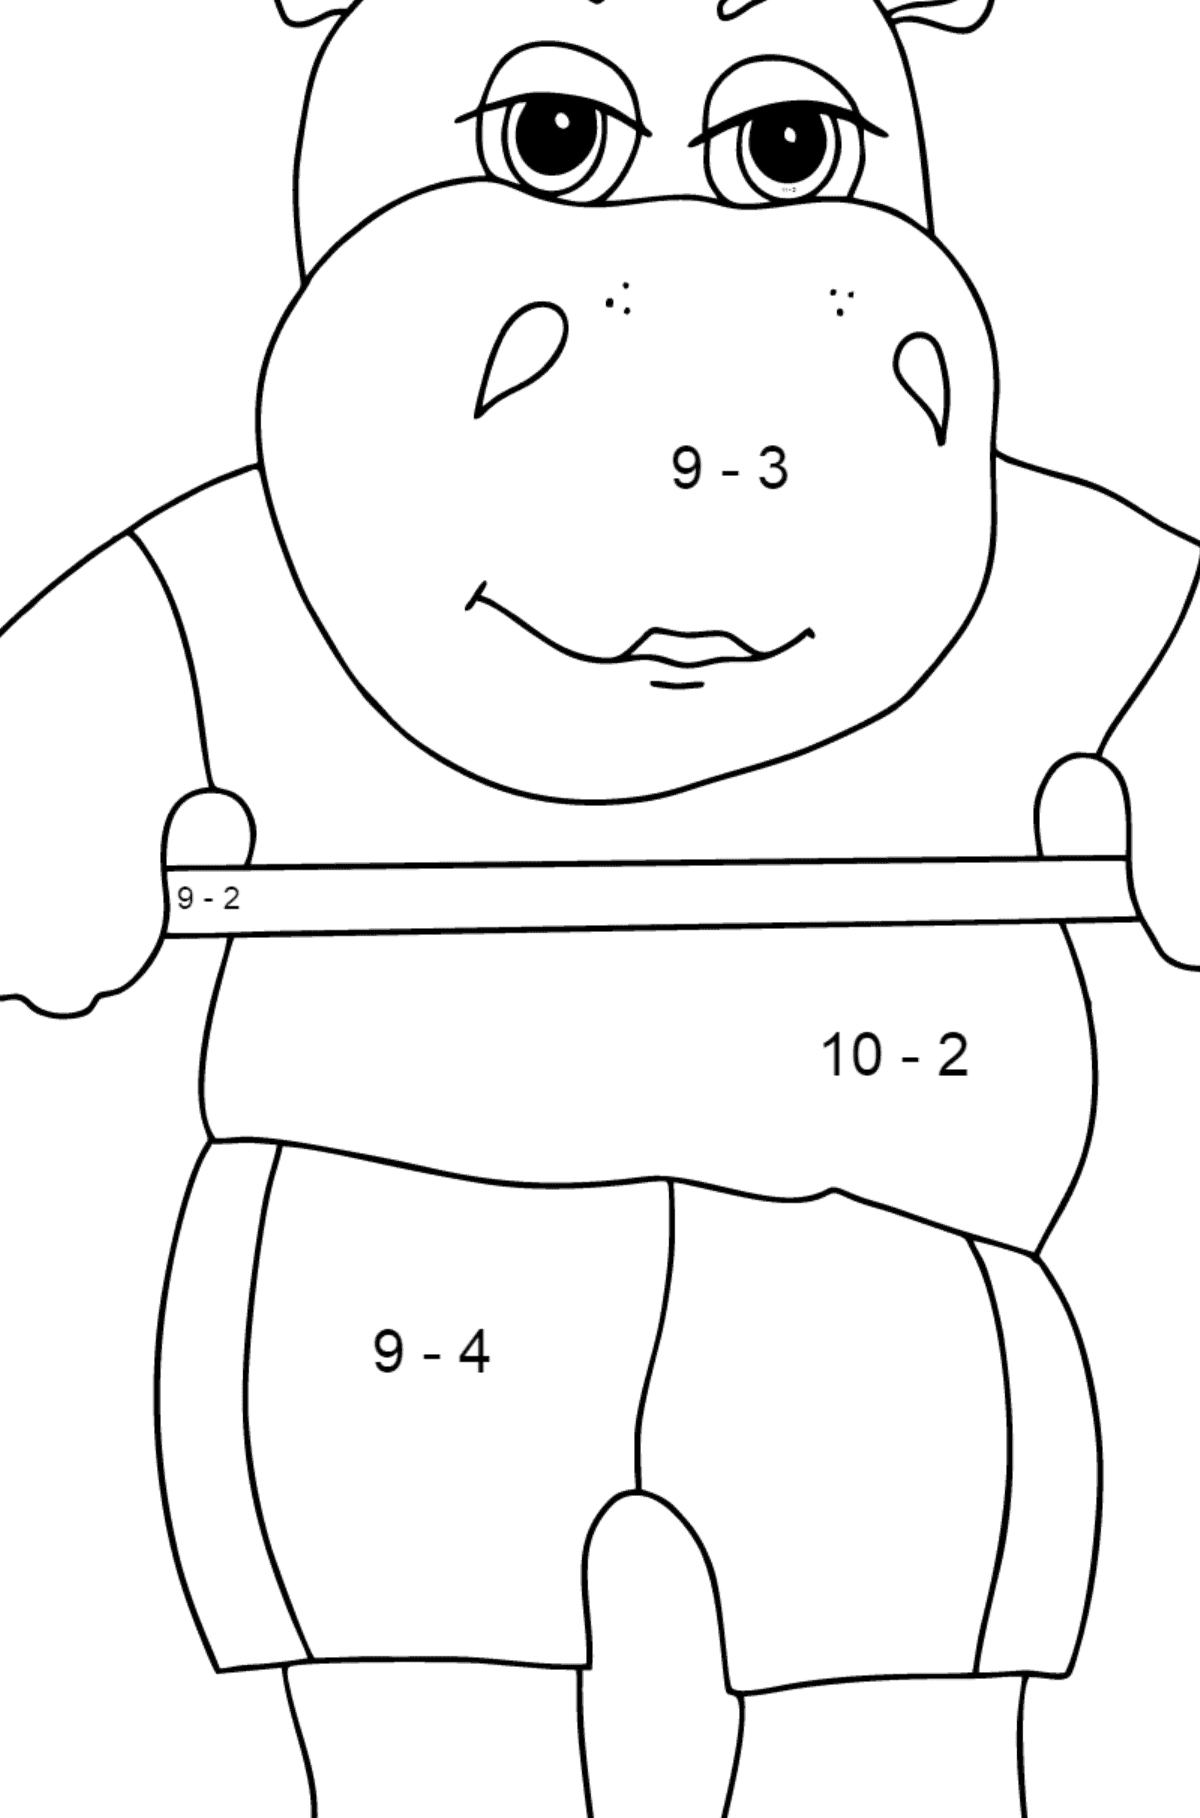 Coloring Page - A Hippo with a Barbell for Children  - Color by Number Substraction